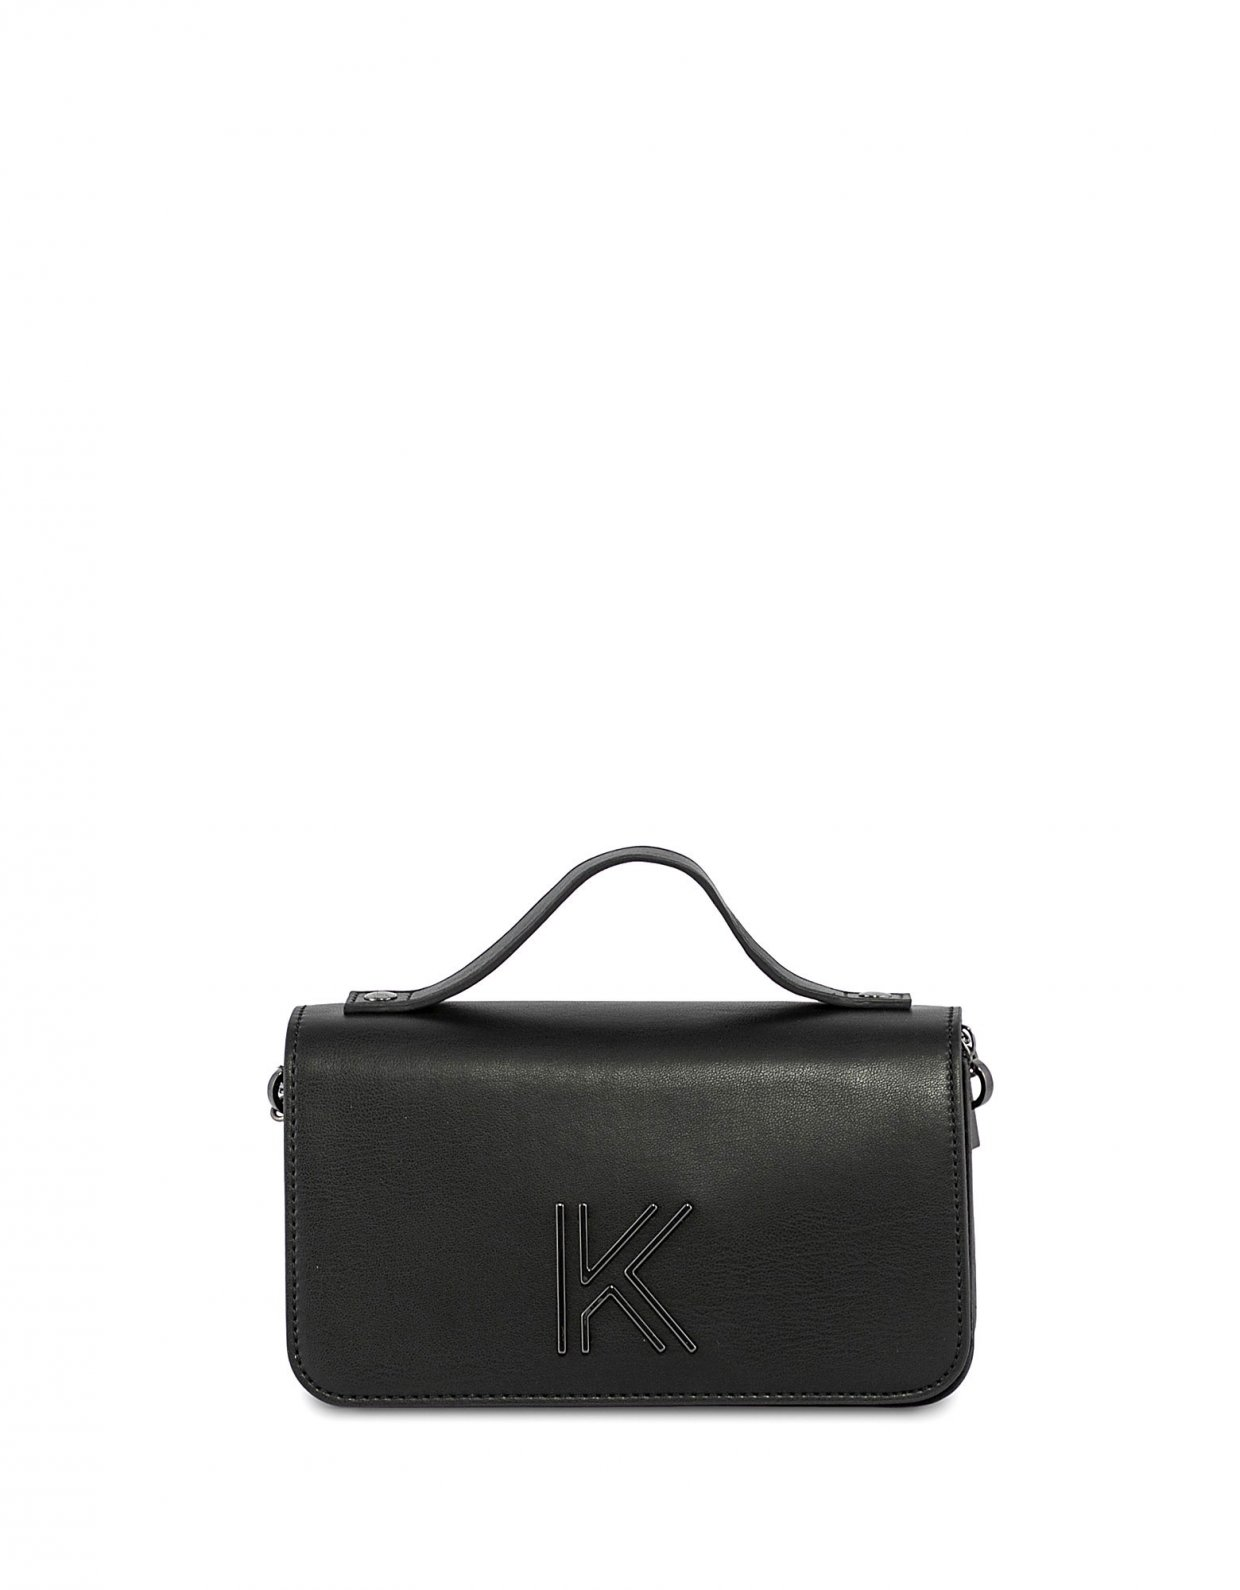 Kendall + Kylie Ida crossbody black